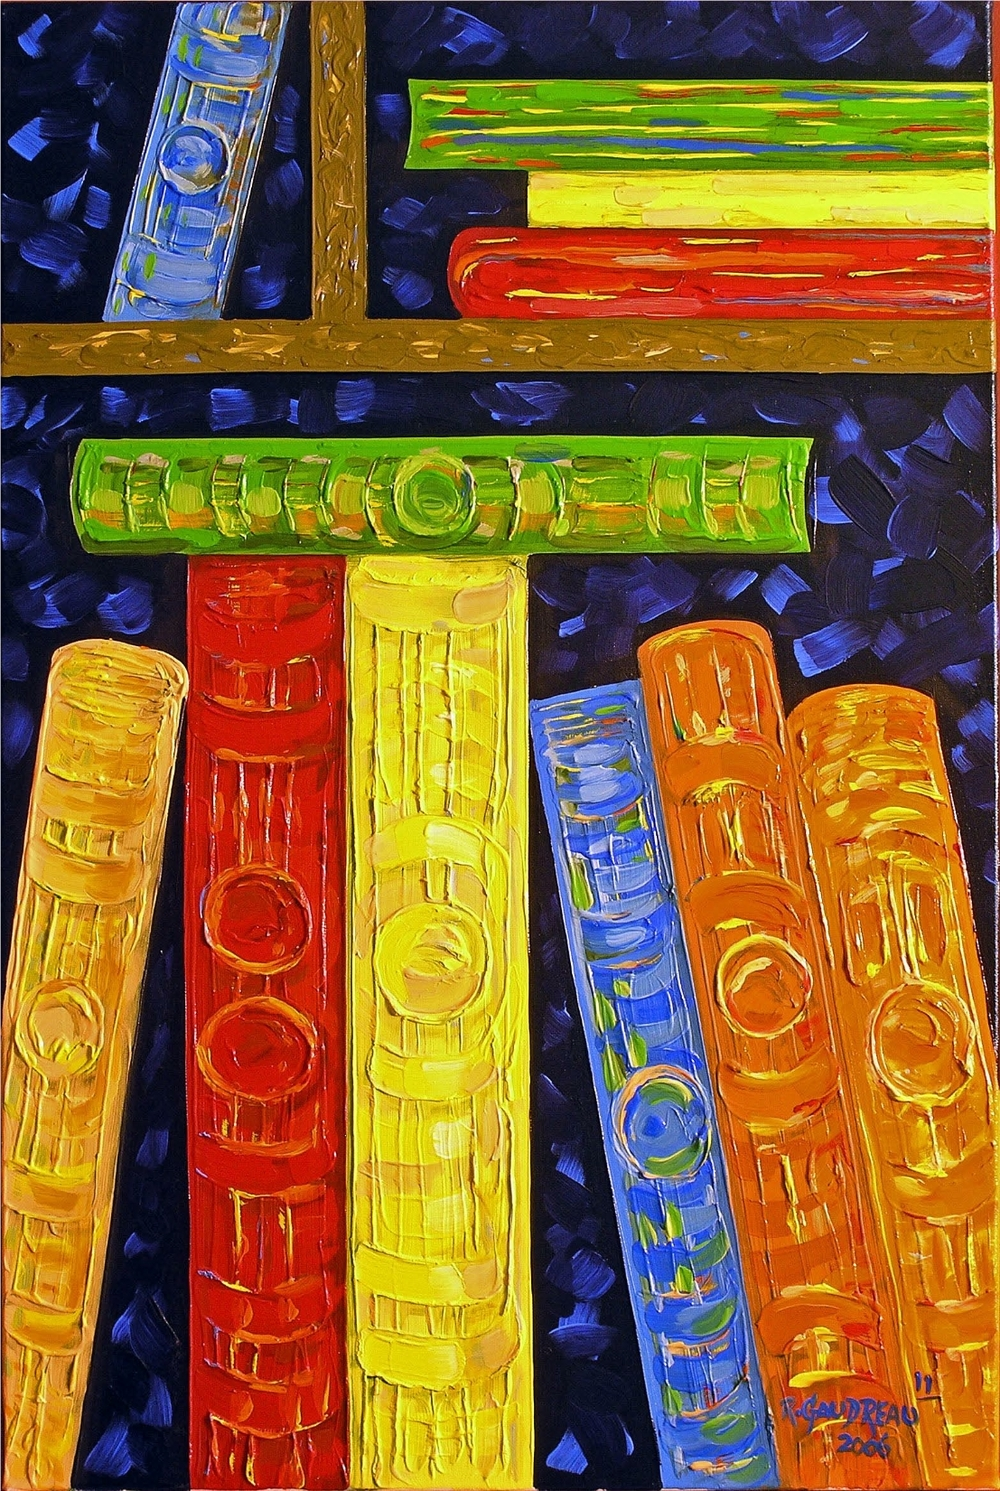 11 Books    2006 oil on canvas 36 x 24 inches